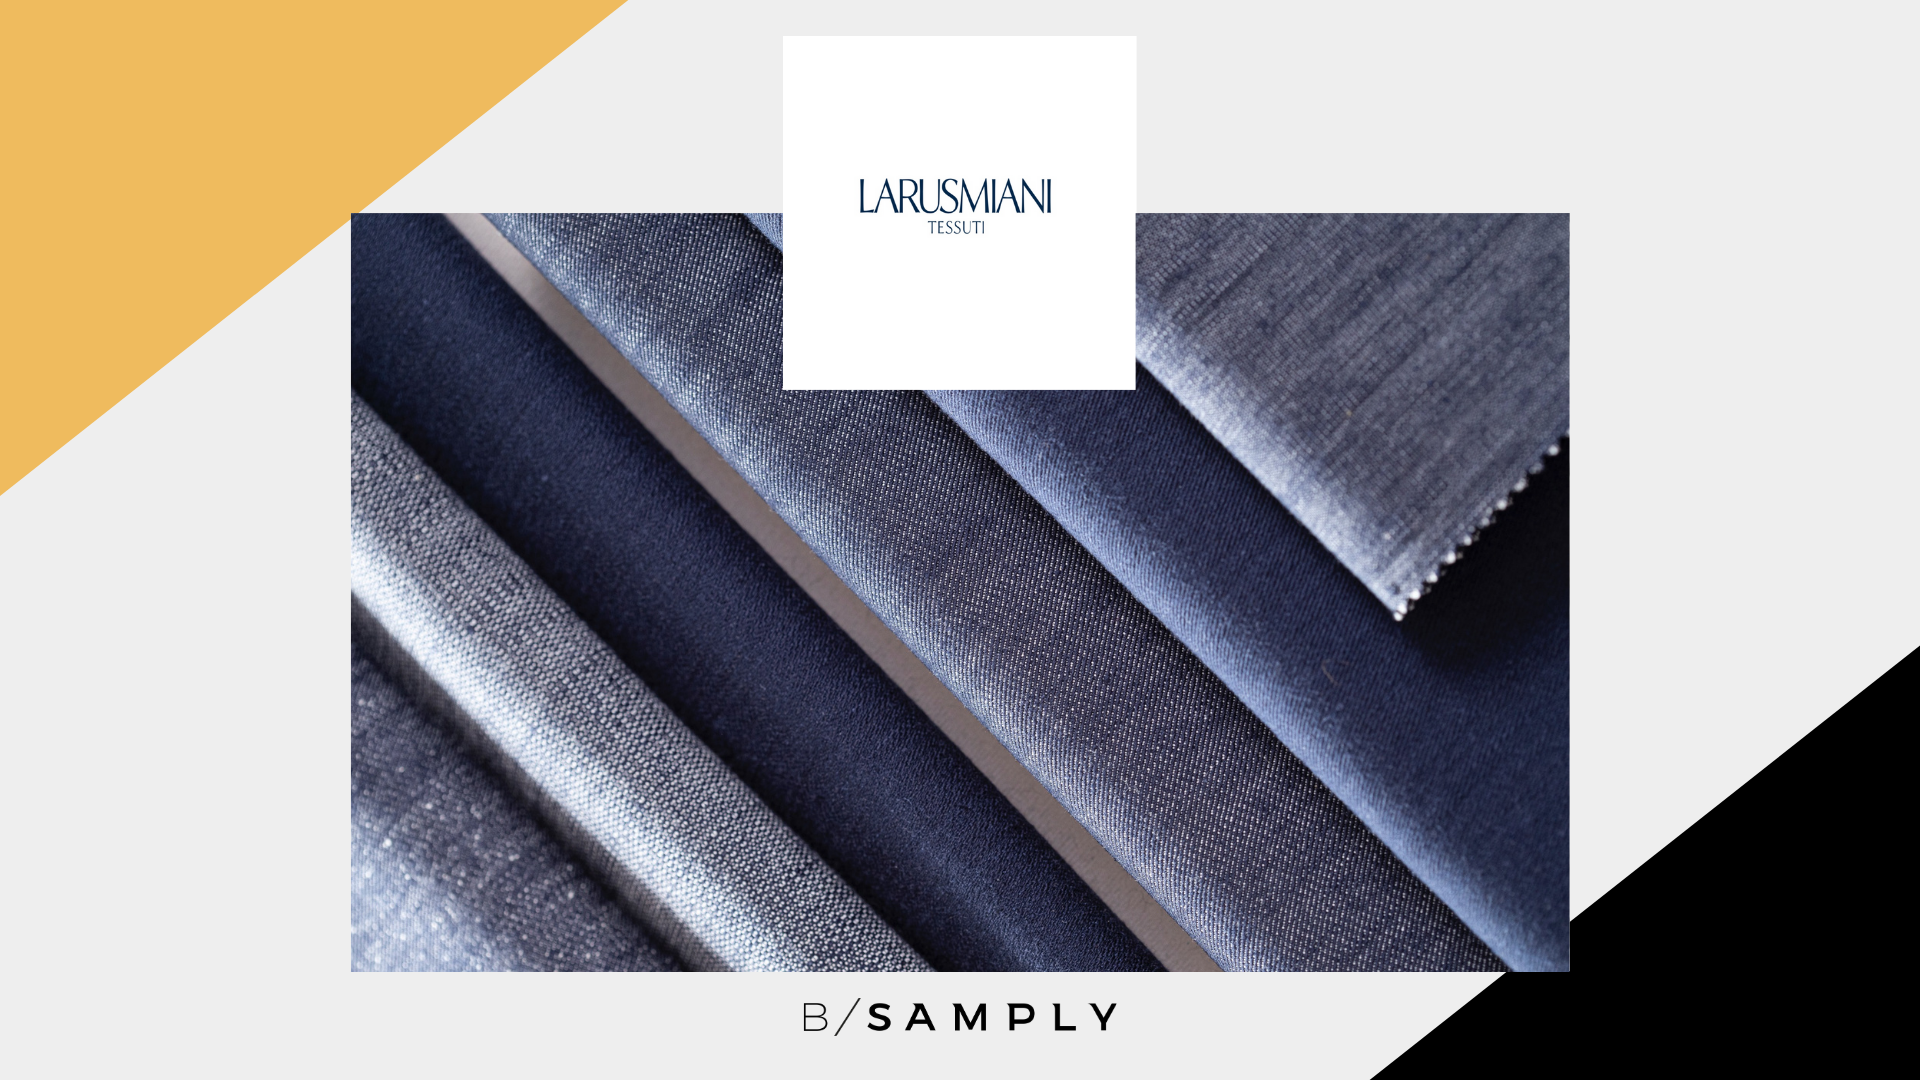 Article Cover for LARUSMIANI by Clerici Tessuto, Featuring Multiple Blue Woven Textiles